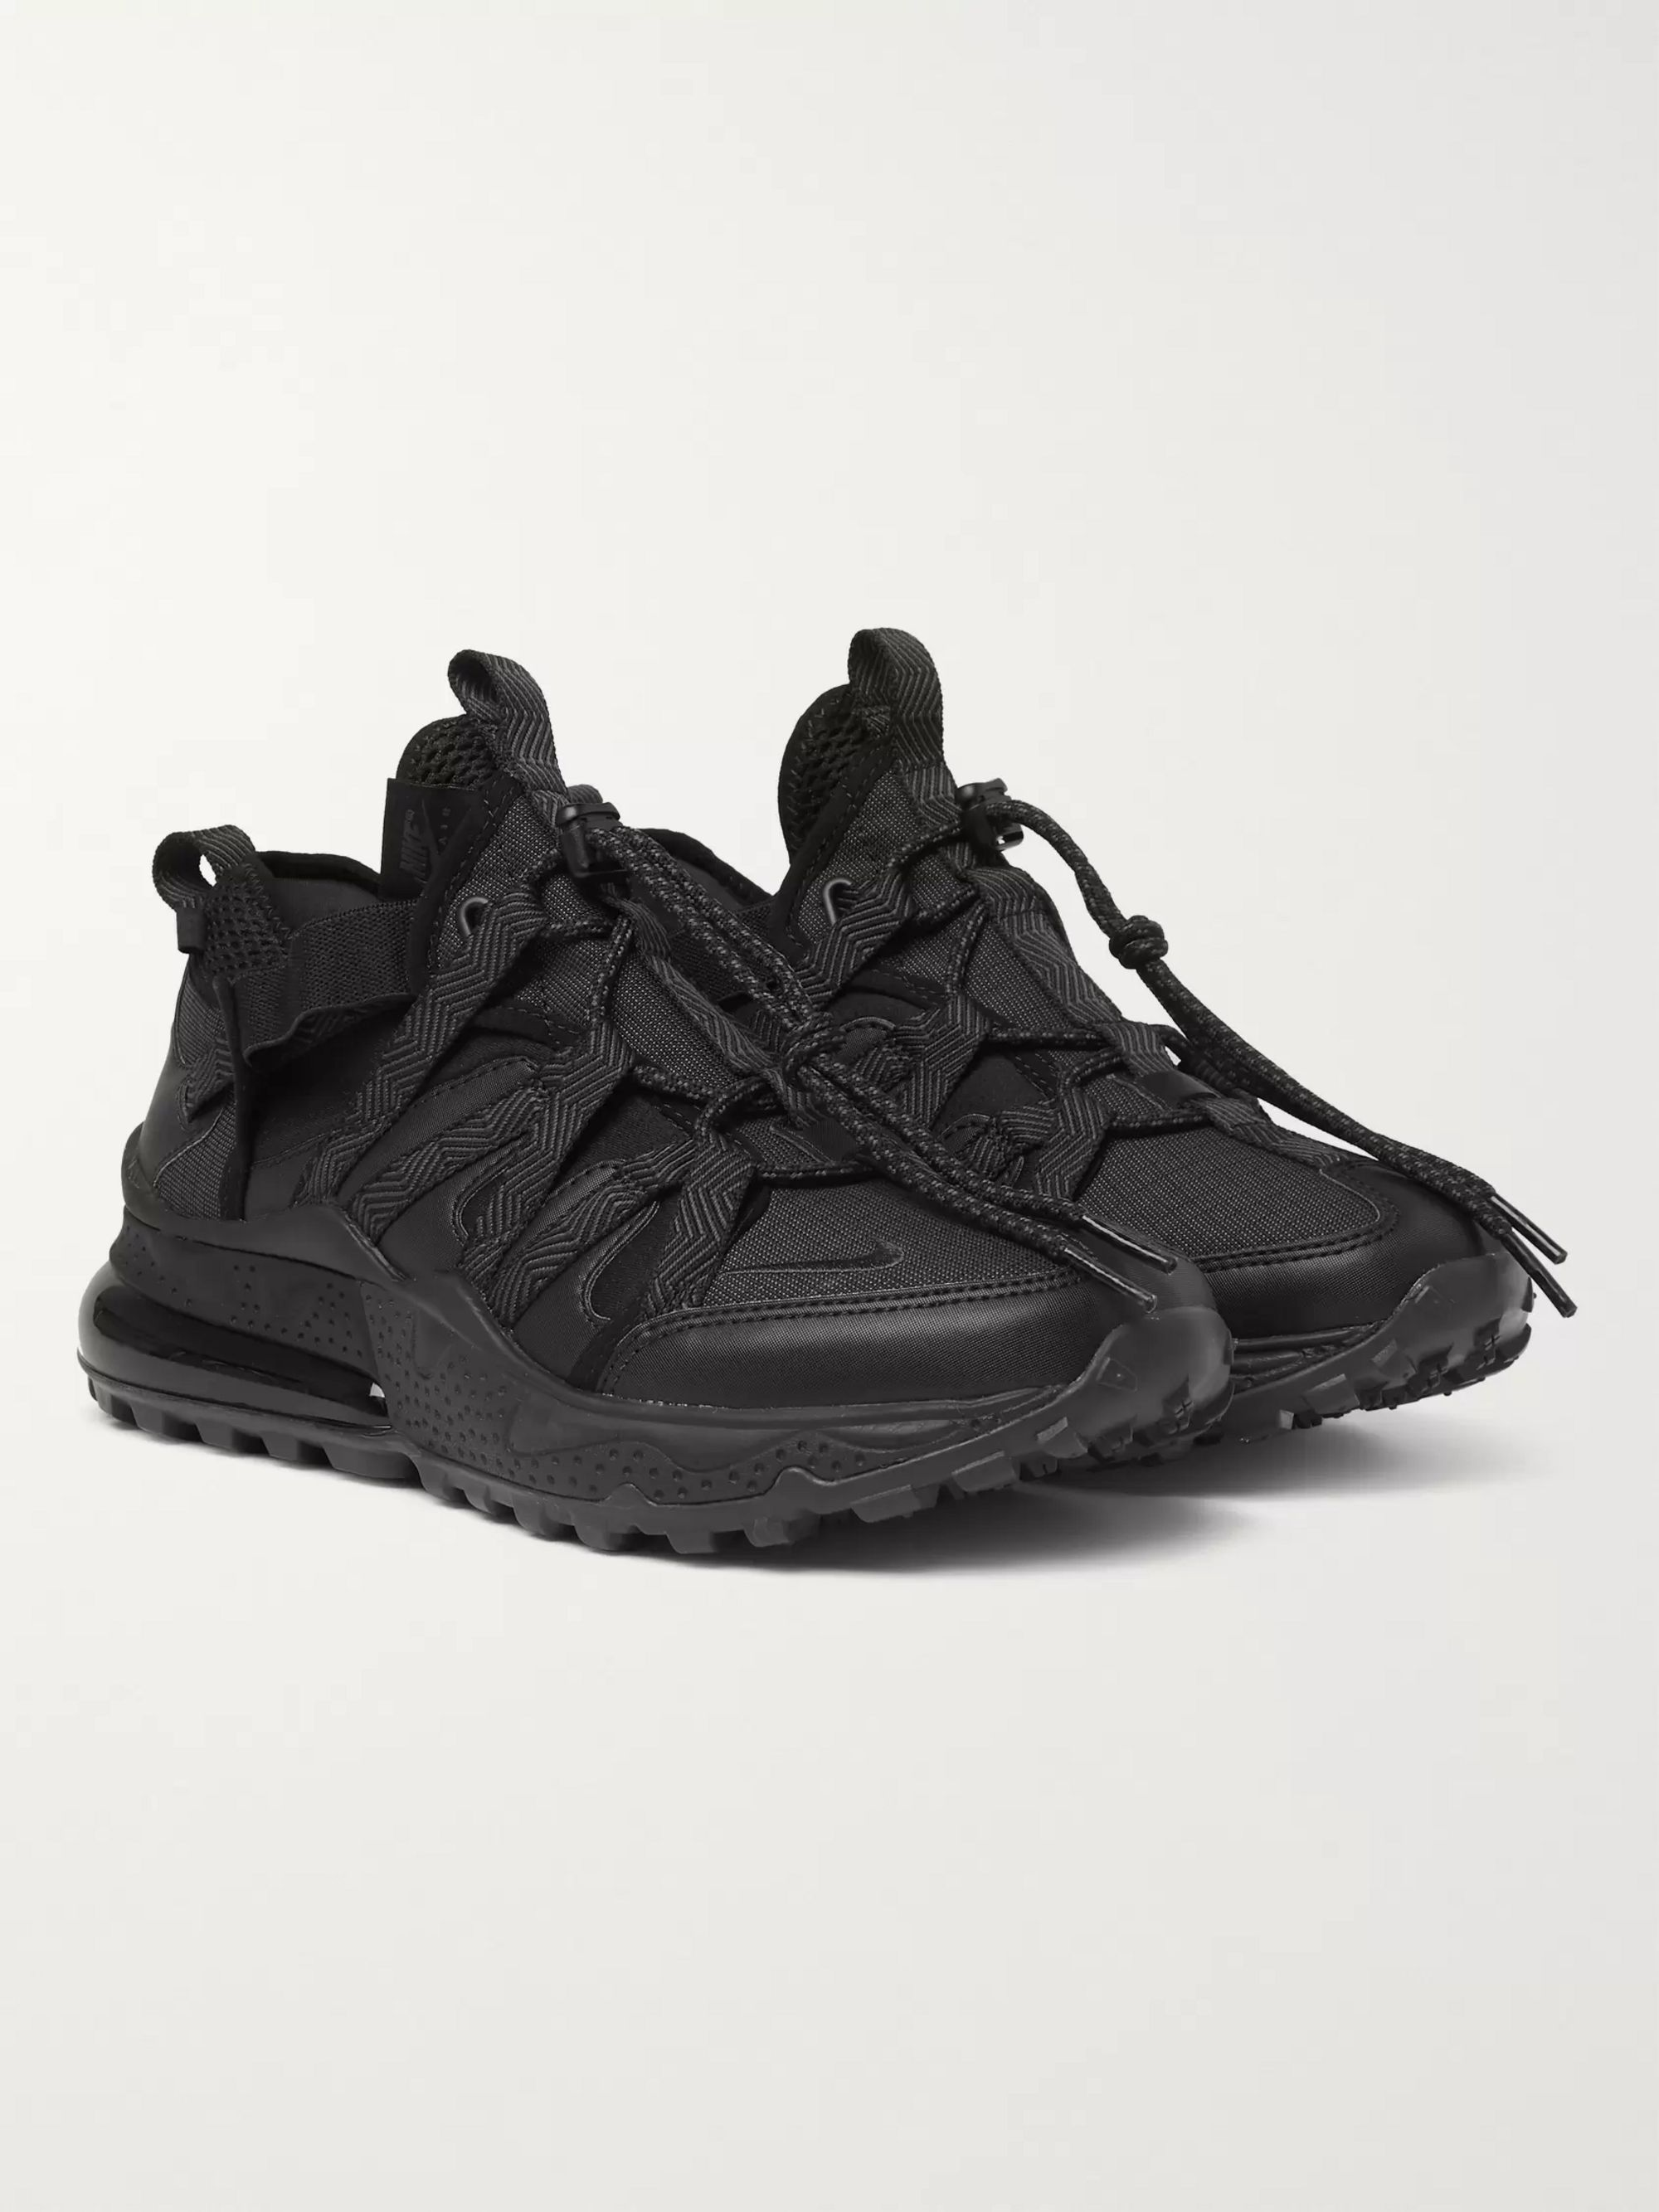 Air Max 270 Bowfin Ripstop, Mesh and Faux Leather Sneakers